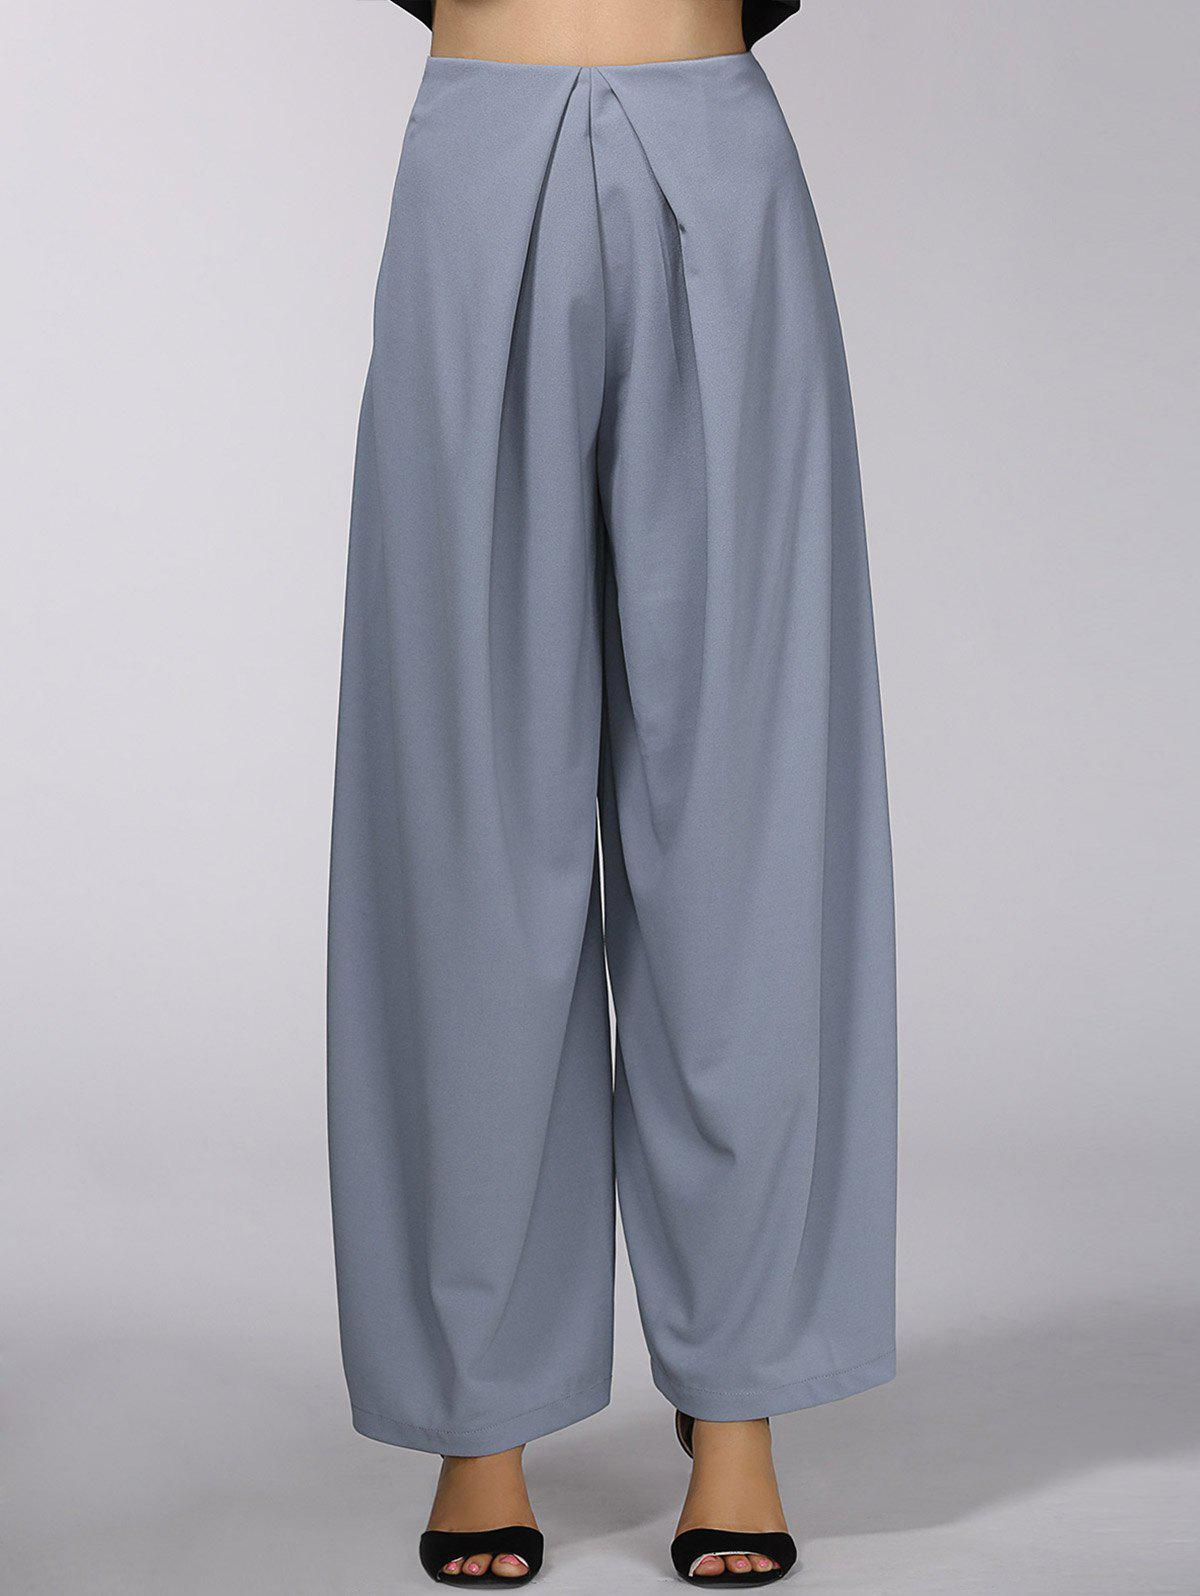 Stylish High Wasit Solid Color Wide-Leg Pants For Women